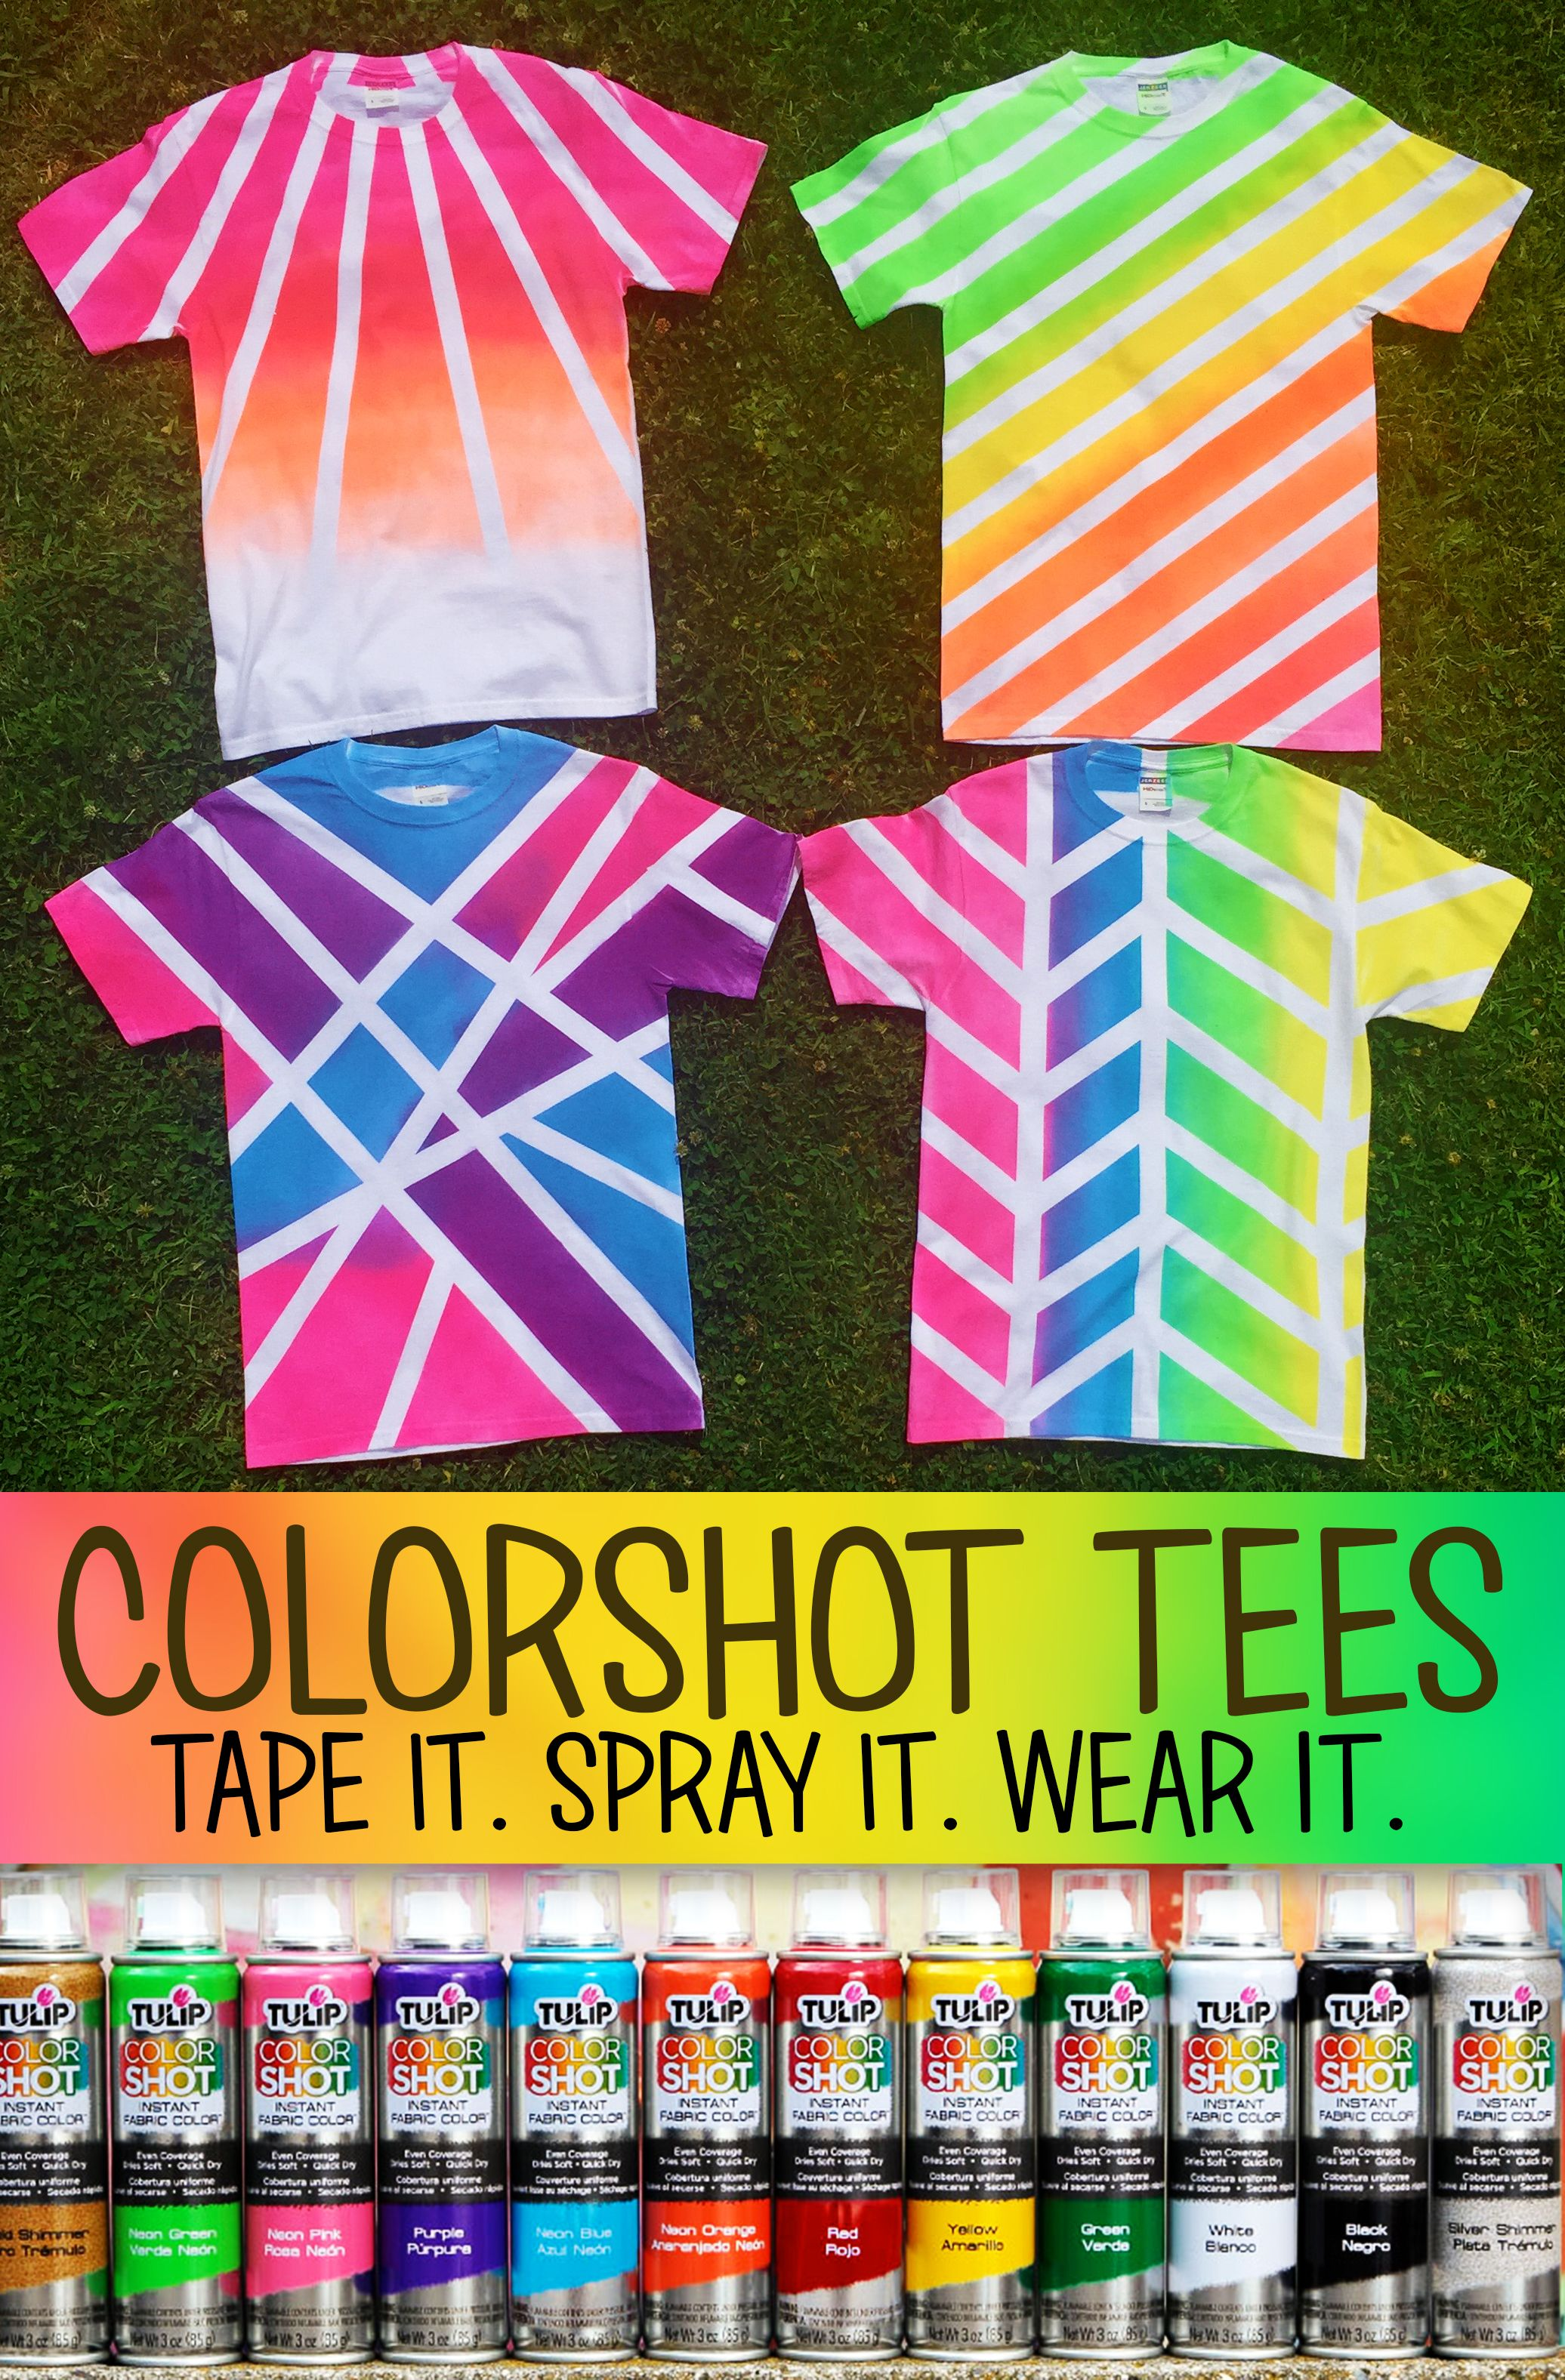 How to make fabric dye - Make Your Own Tie Dye T Shirt Shine Bright This Summer With These One Of A Kind Shirts Created Using Tulip Colorshot Instant Fabric Spray